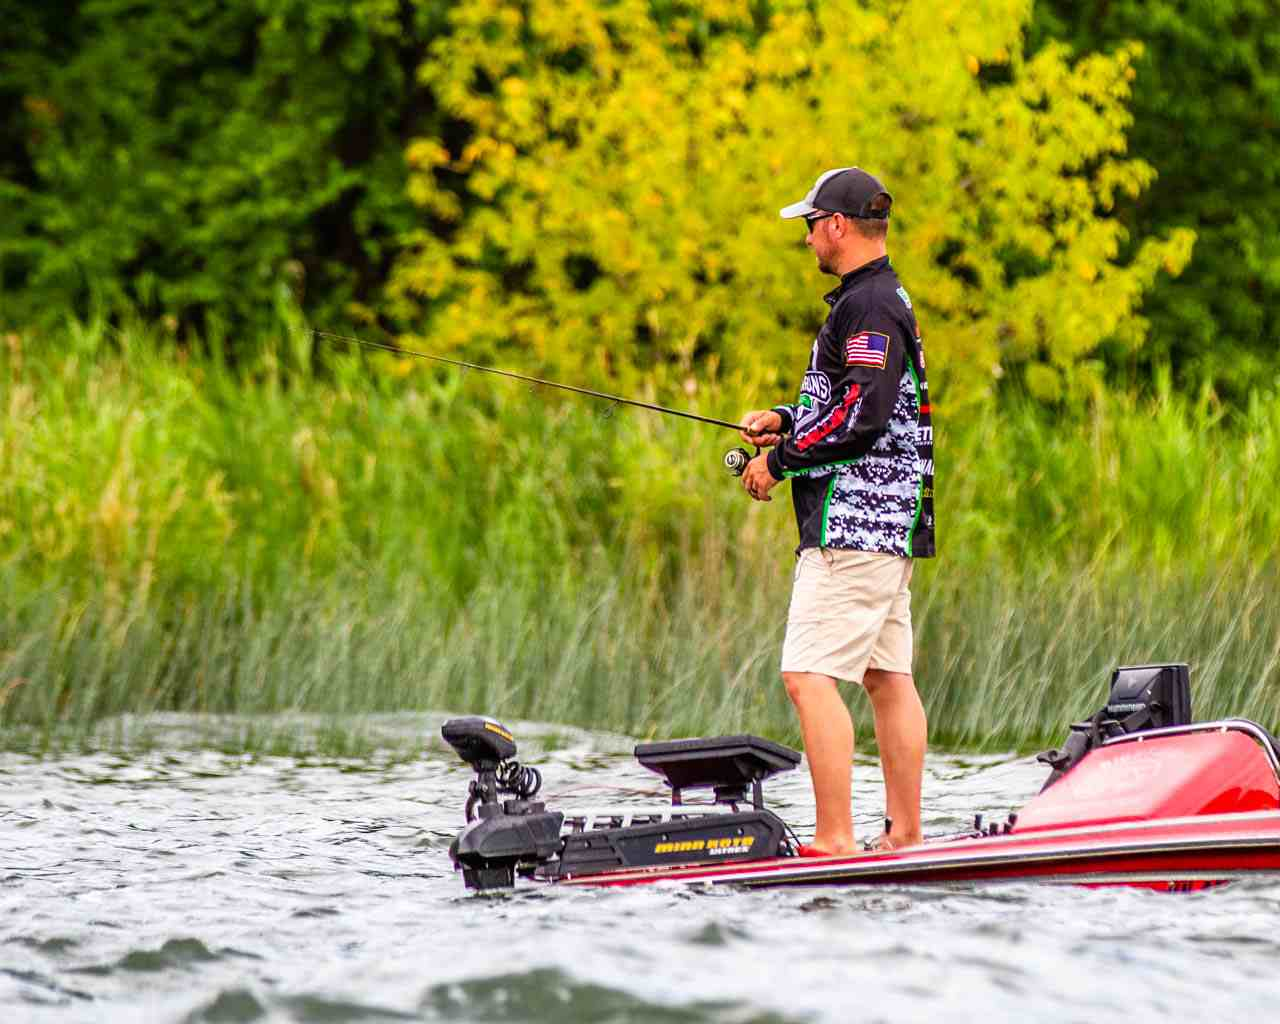 Treeland Resorts To Host The Champions Tour Classic Bass Tournament!